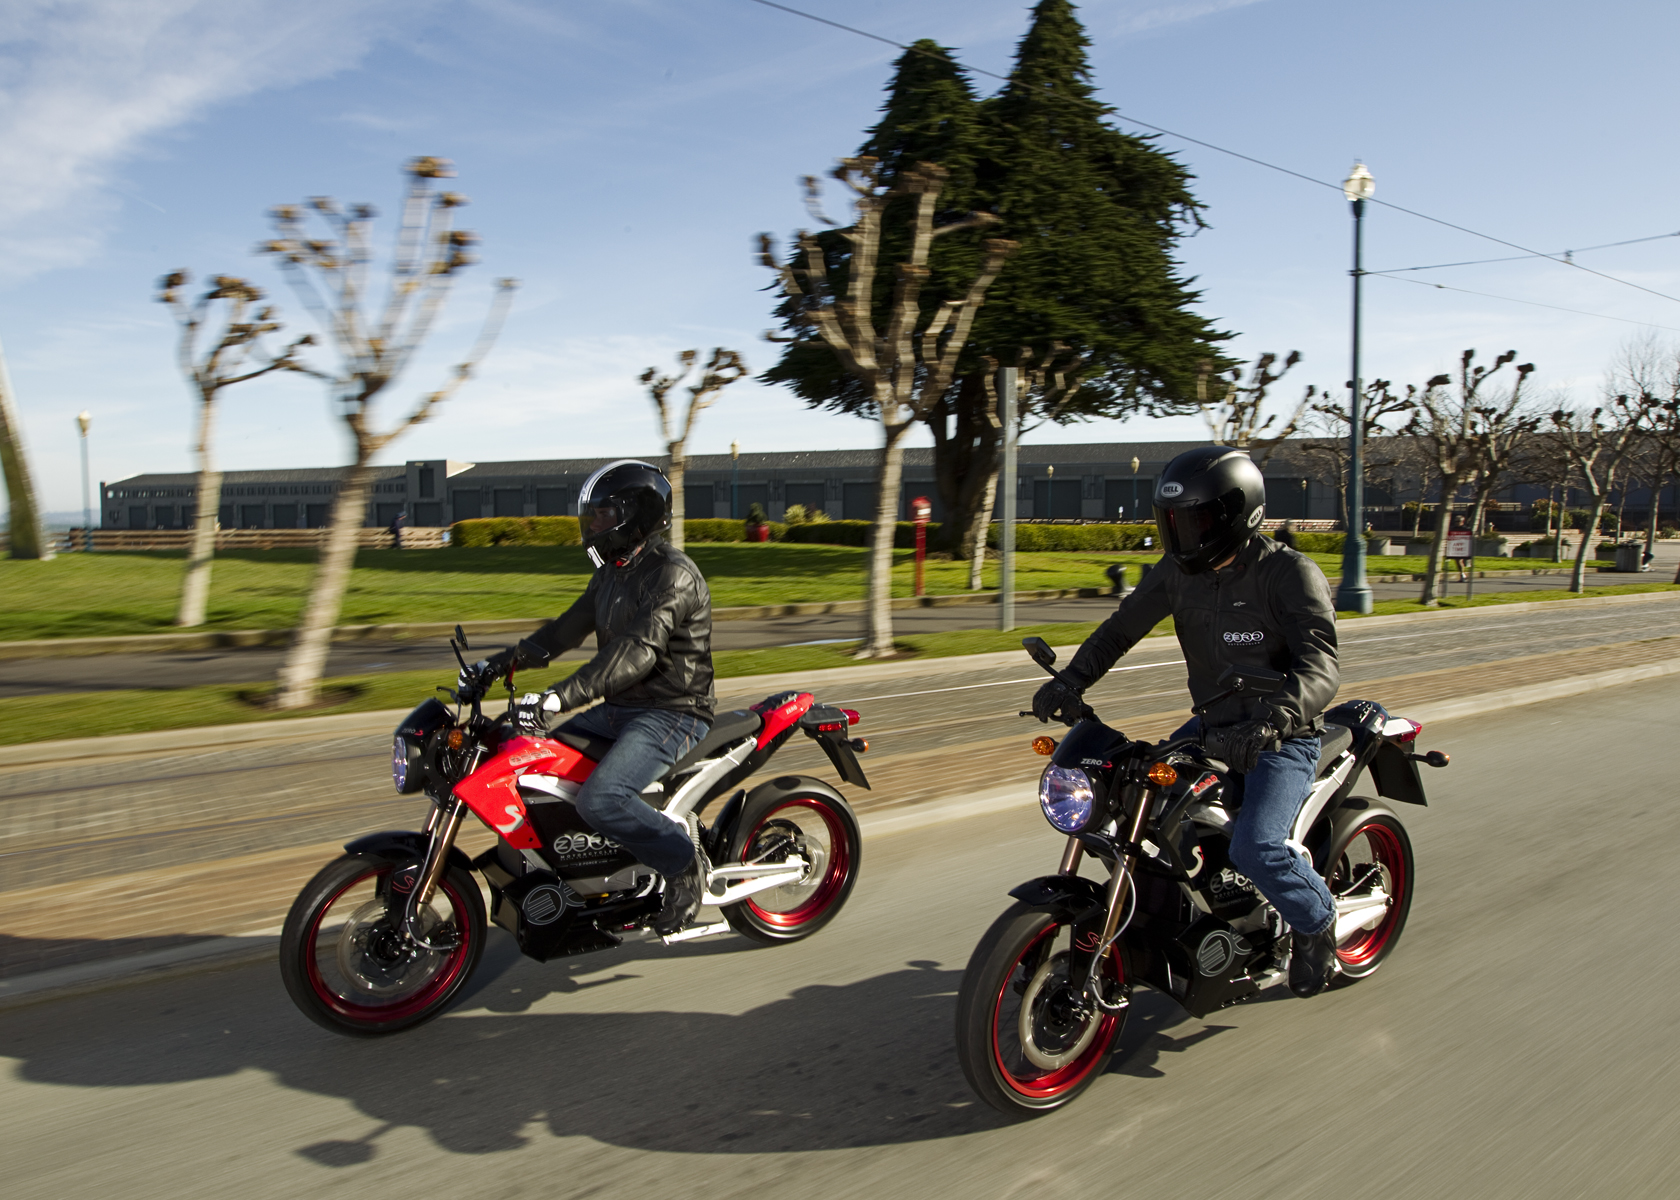 2011 Zero S Electric Motorcycle: Pair, Cruising in the City